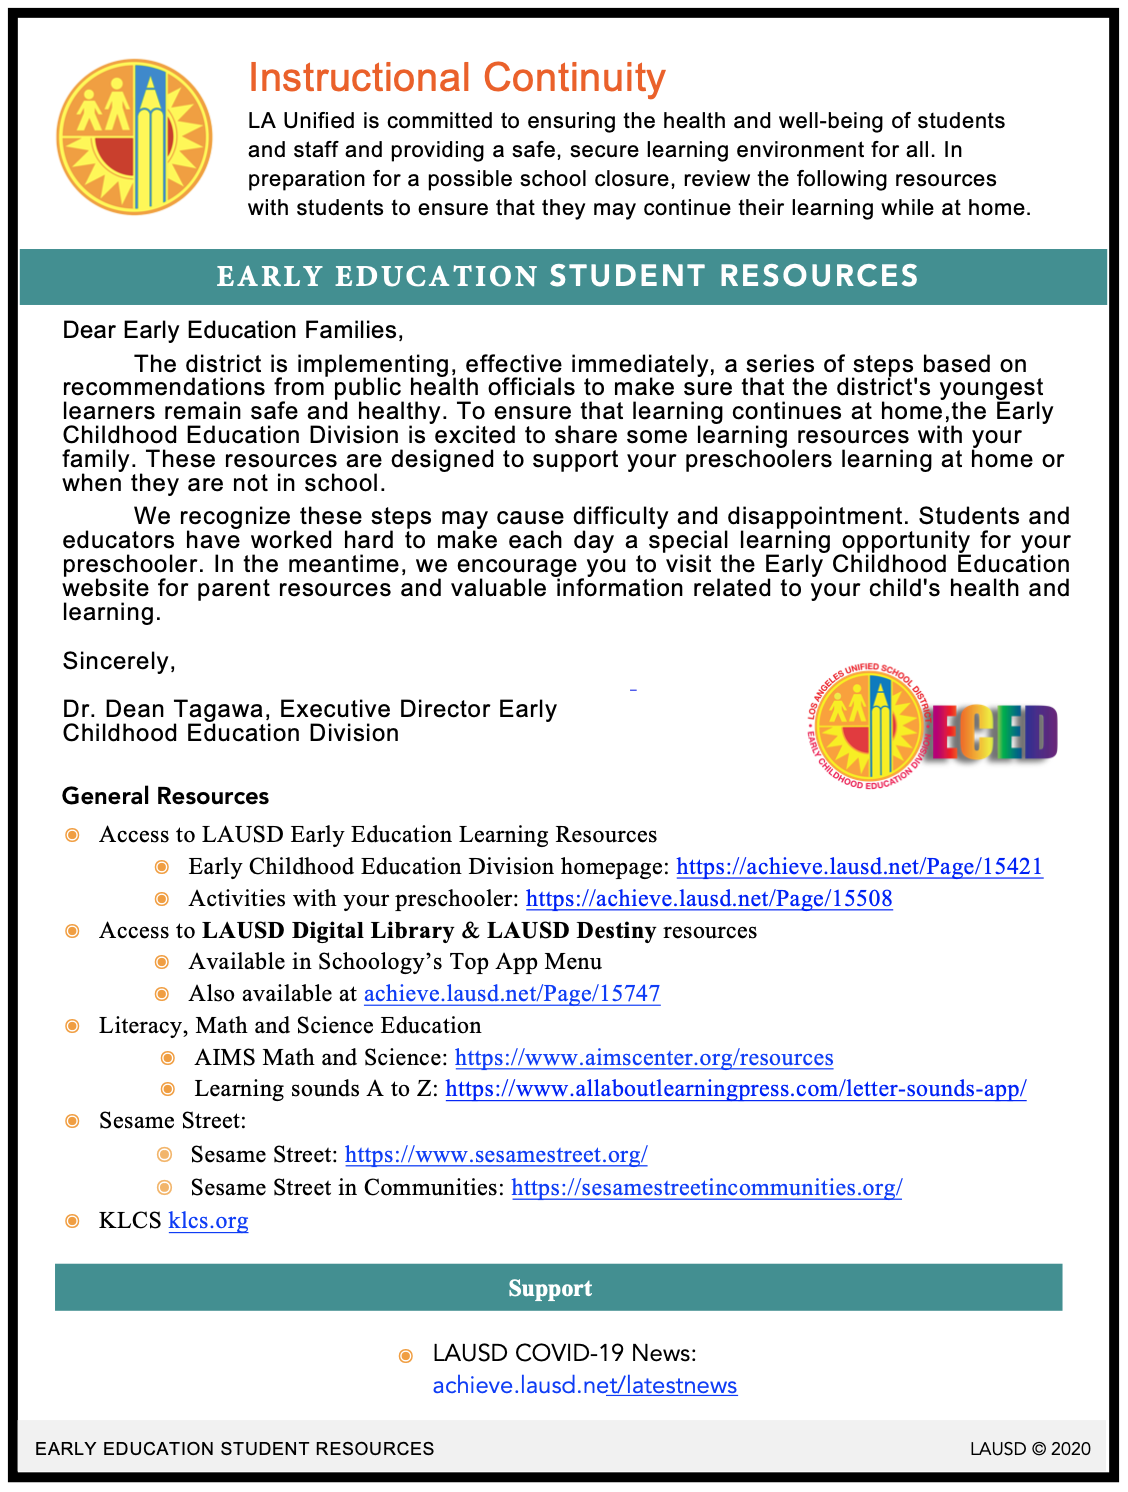 Flyer in English for Early Education Student Resources